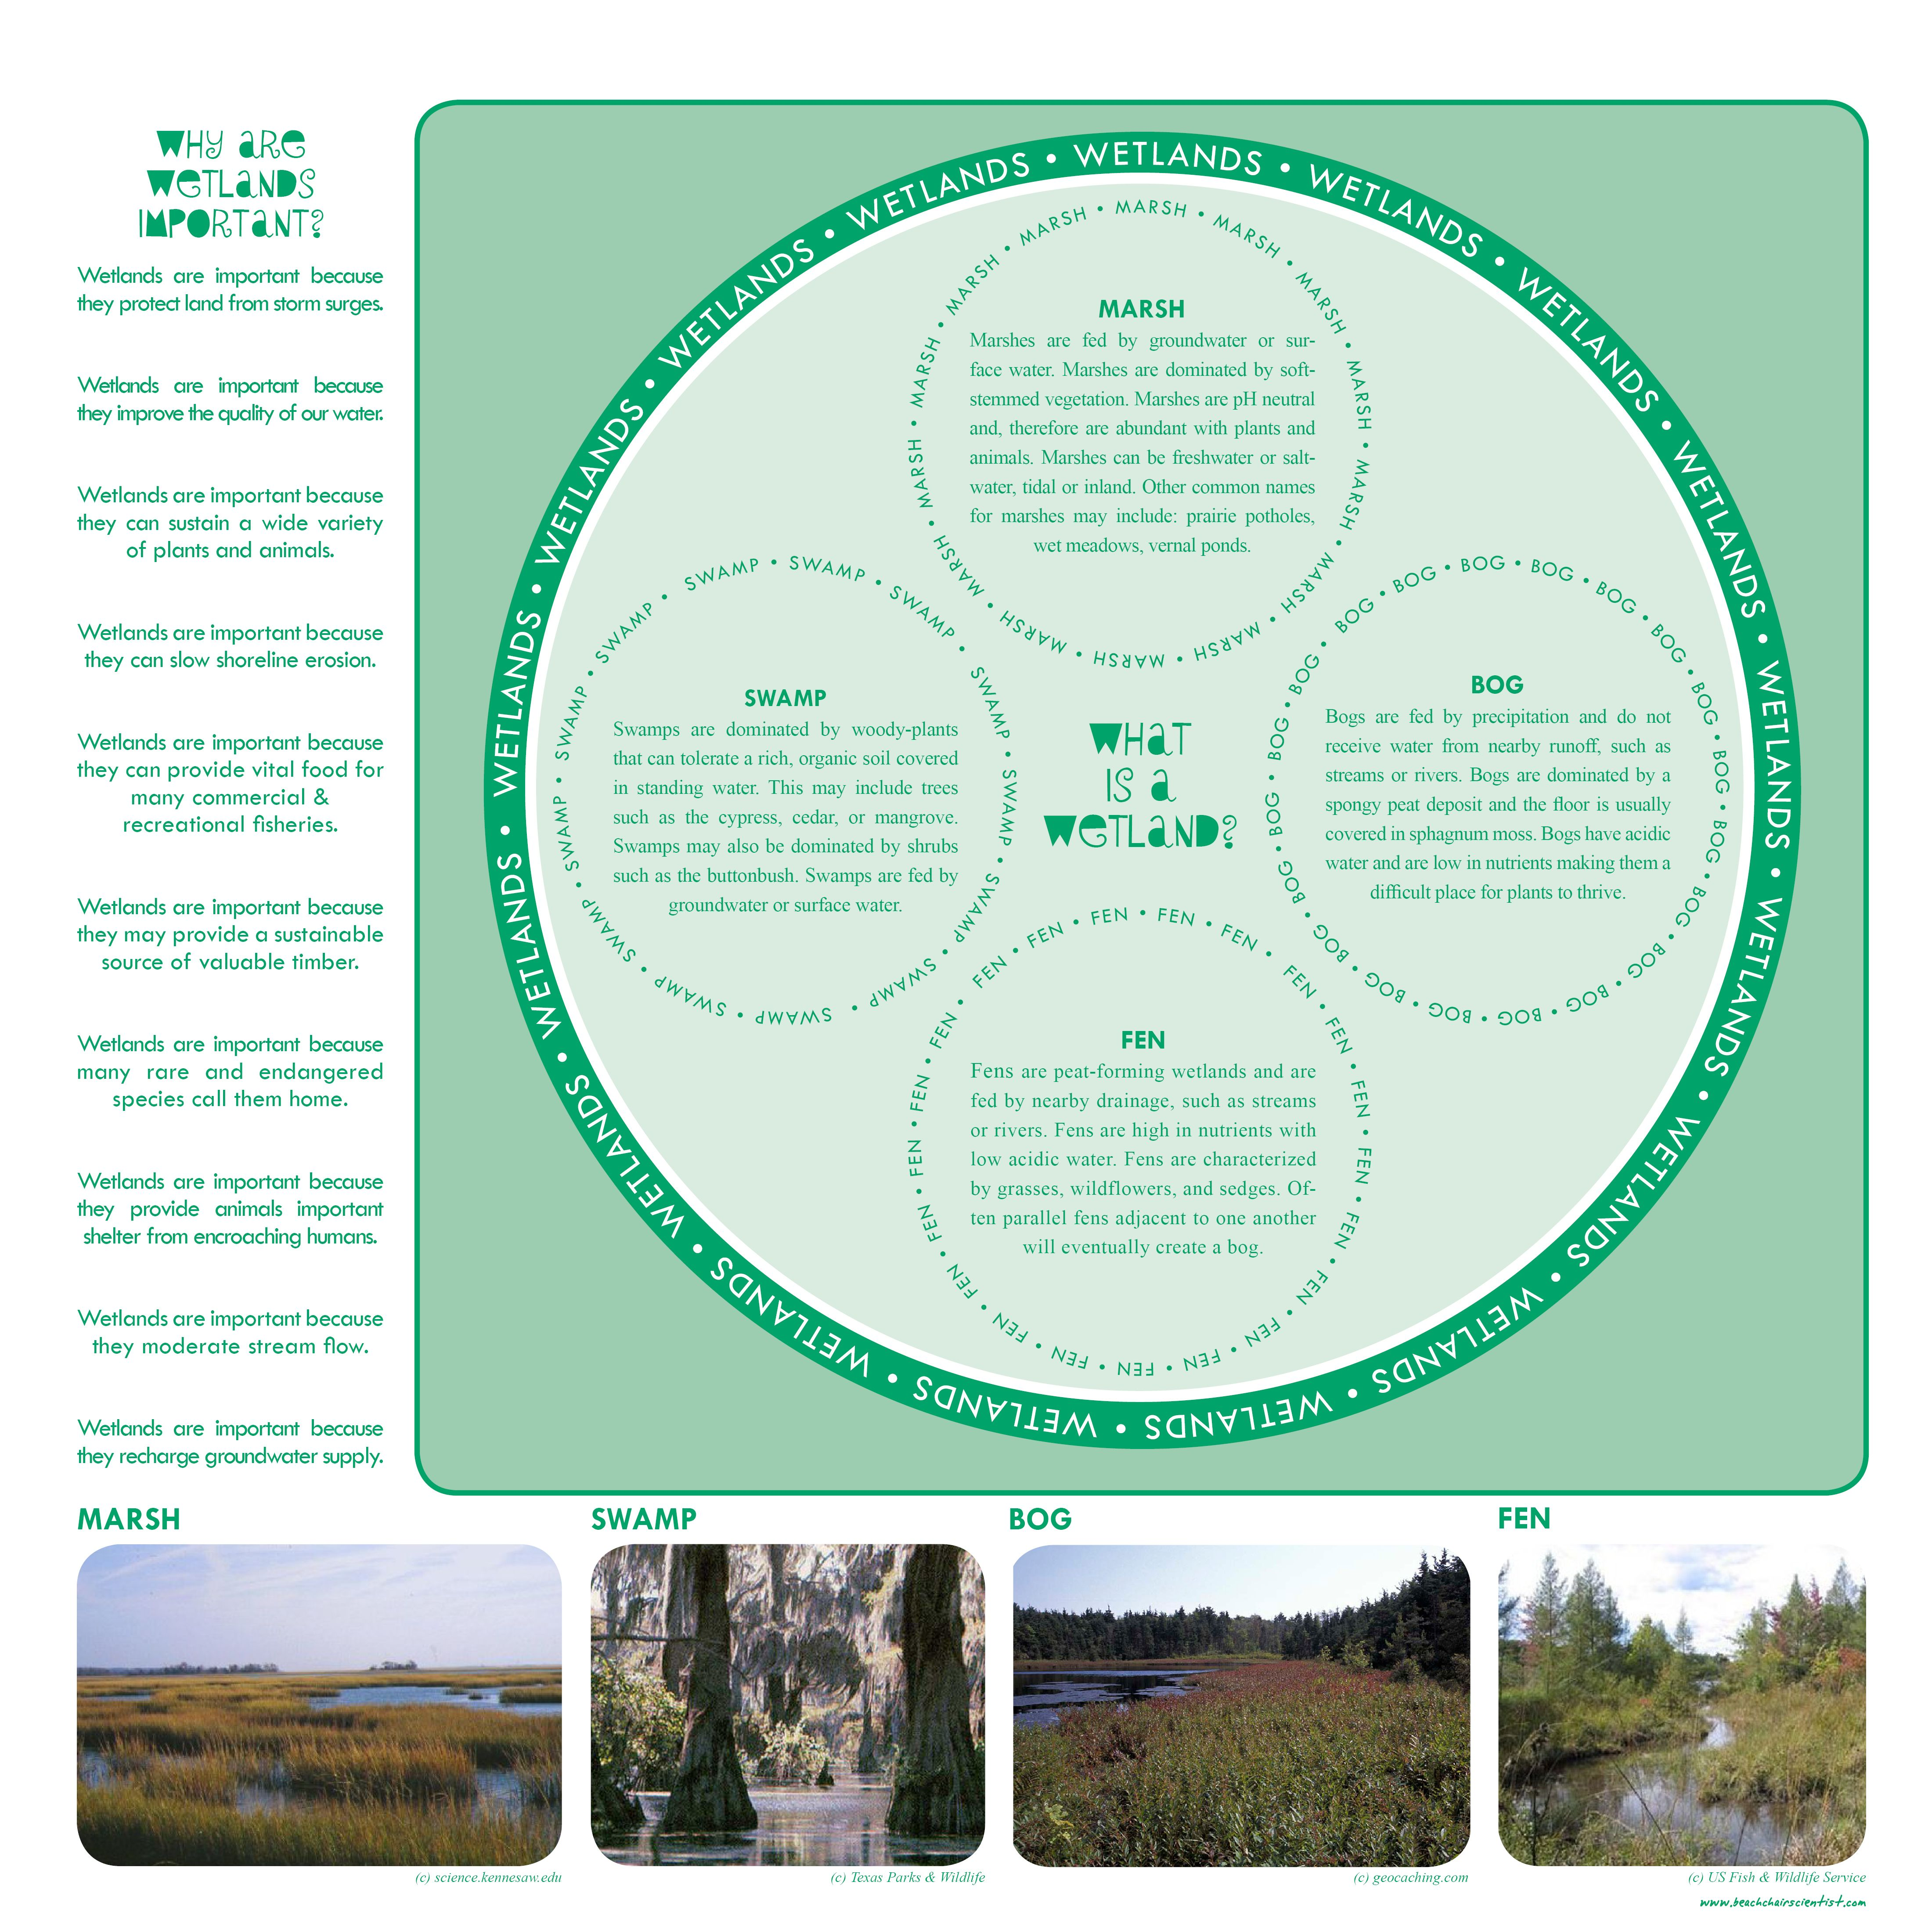 Wetlands Nice List Of Why Wetlands Are Important And The